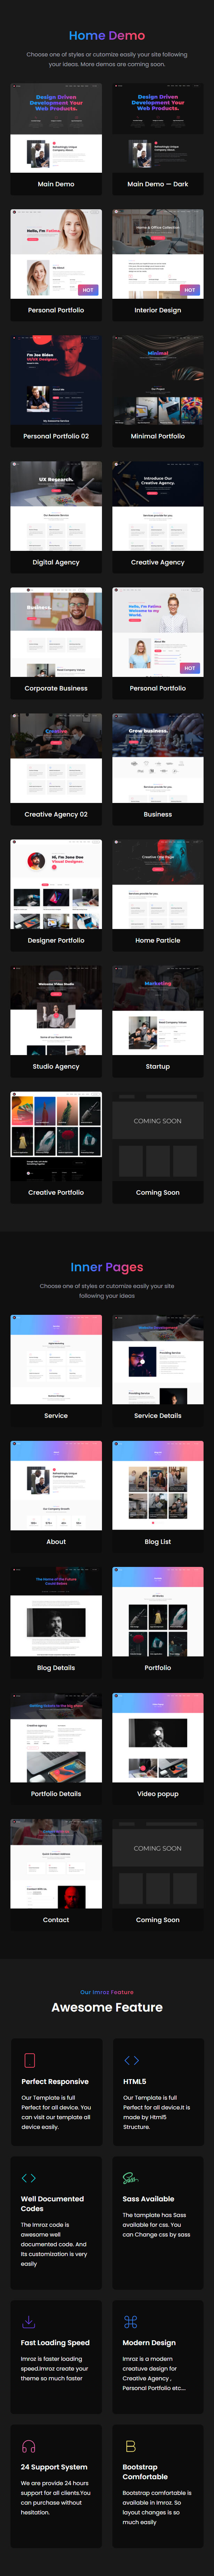 Imroz - Creative Agency and Portfolio Bootstrap Template - 8